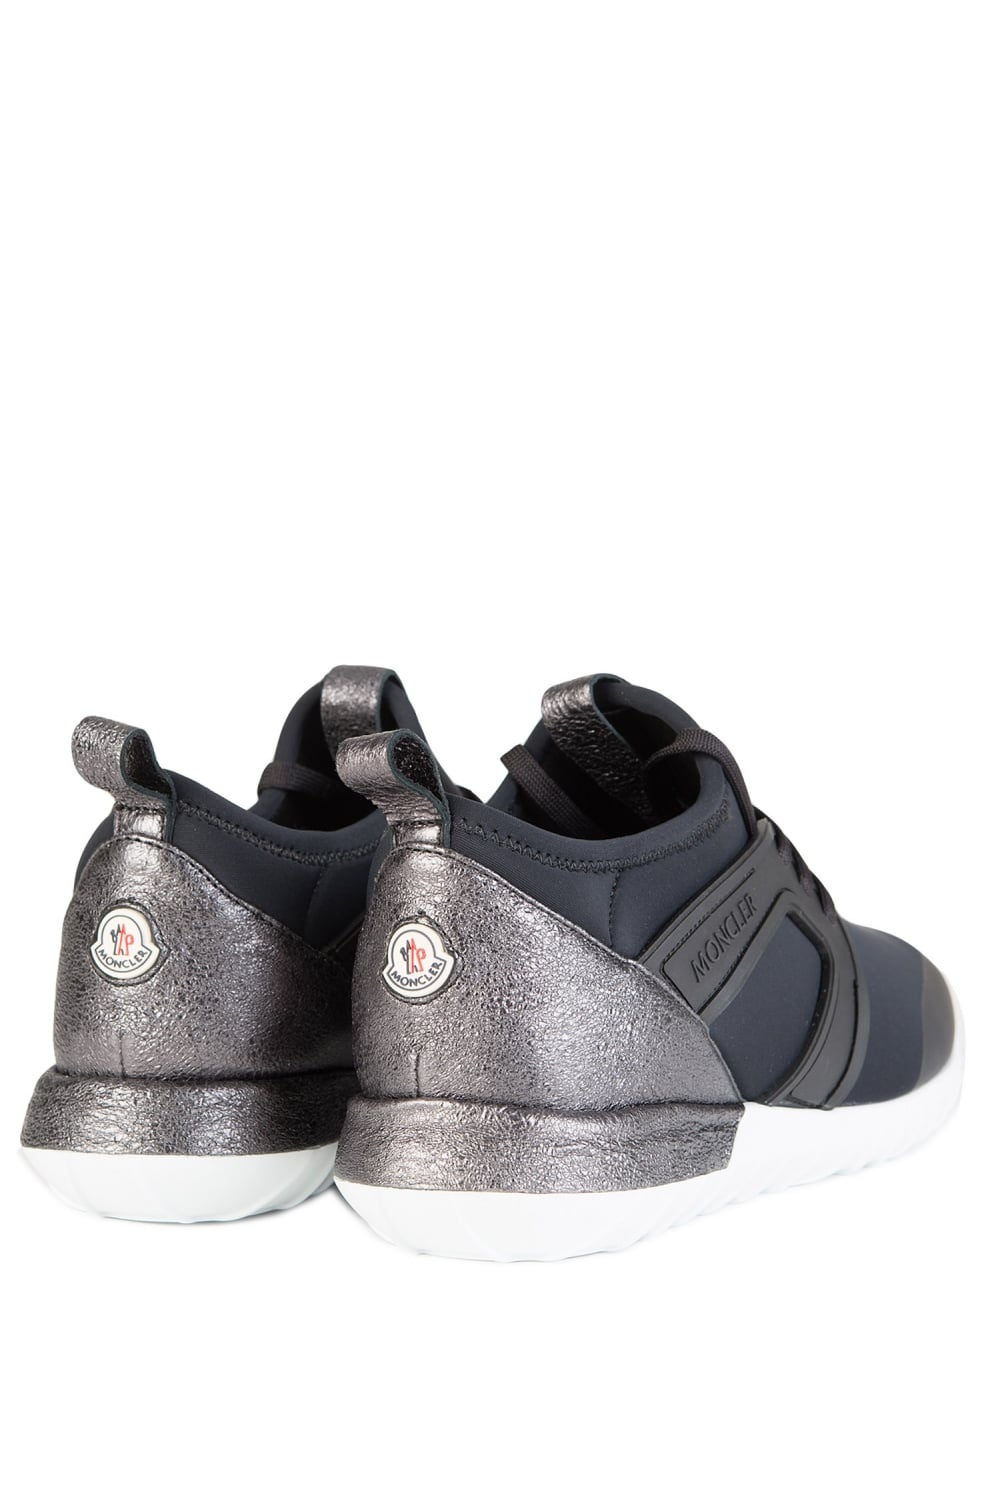 moncler trainers womens